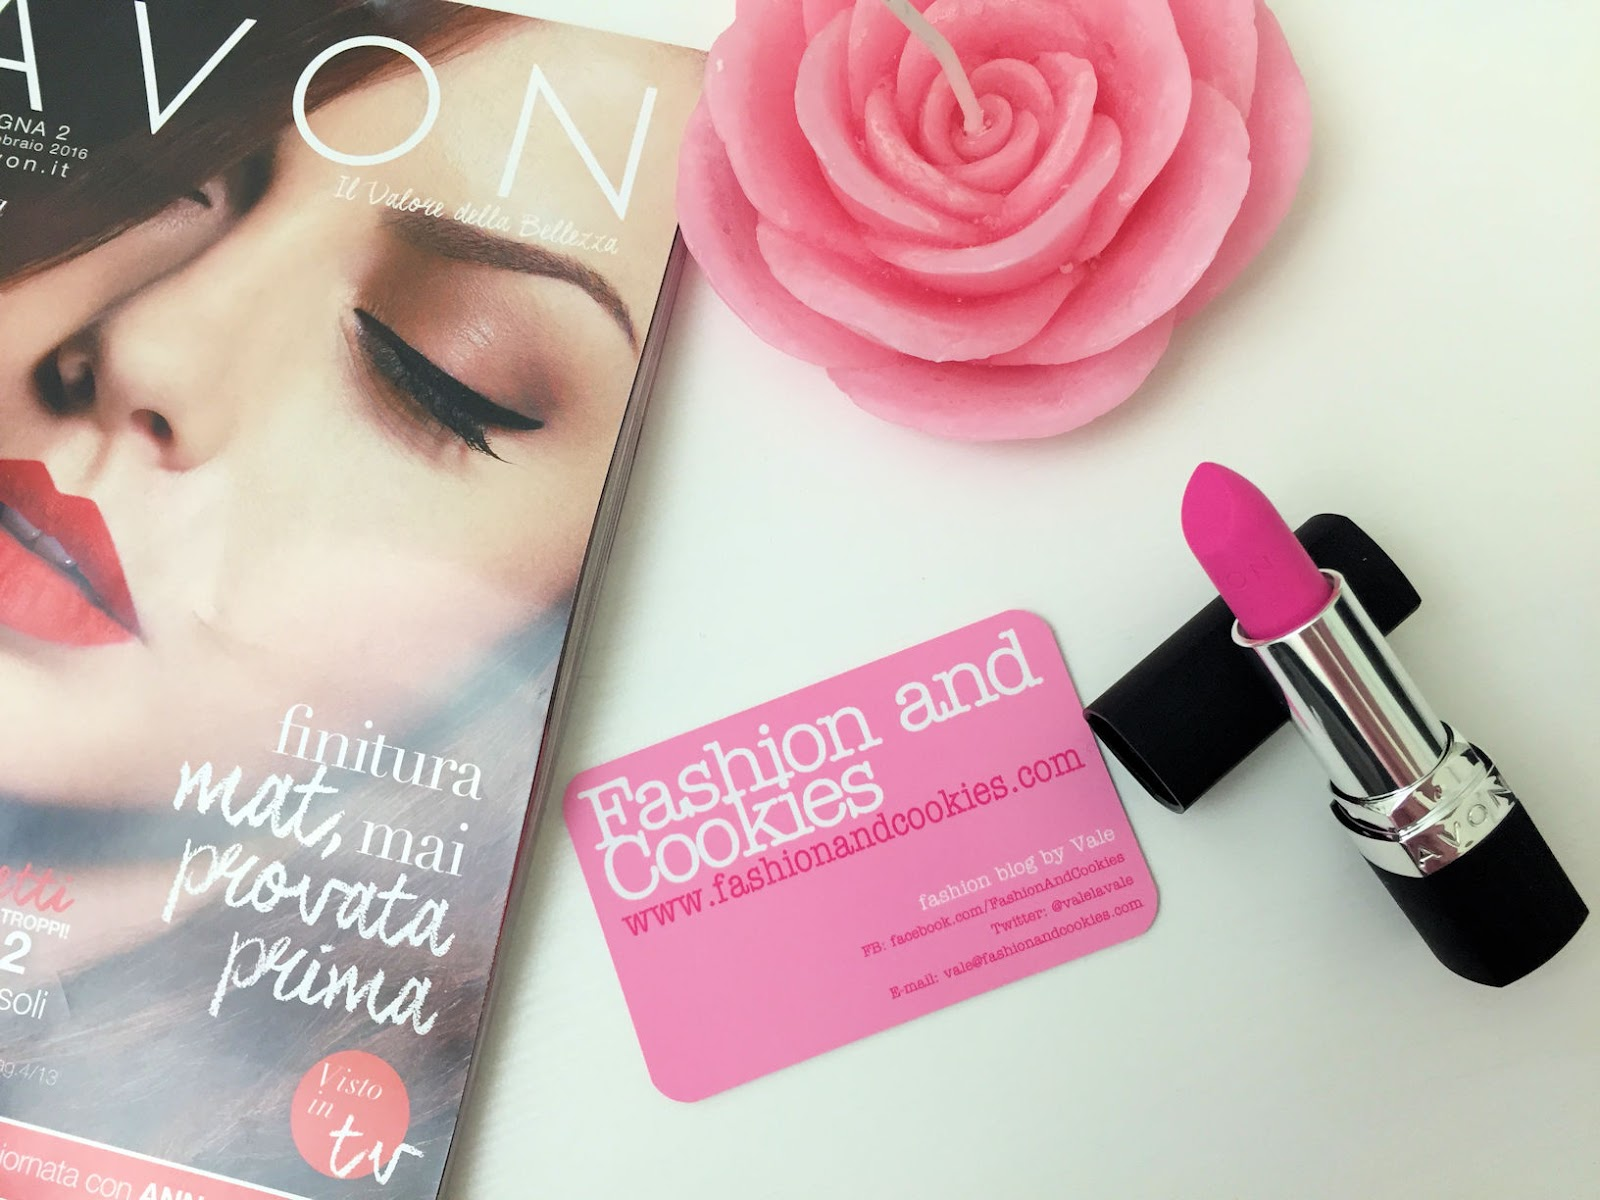 Avon Perfectly Matte Lipstick Electric Pink on Fashion and Cookies beauty blog, beauty blogger